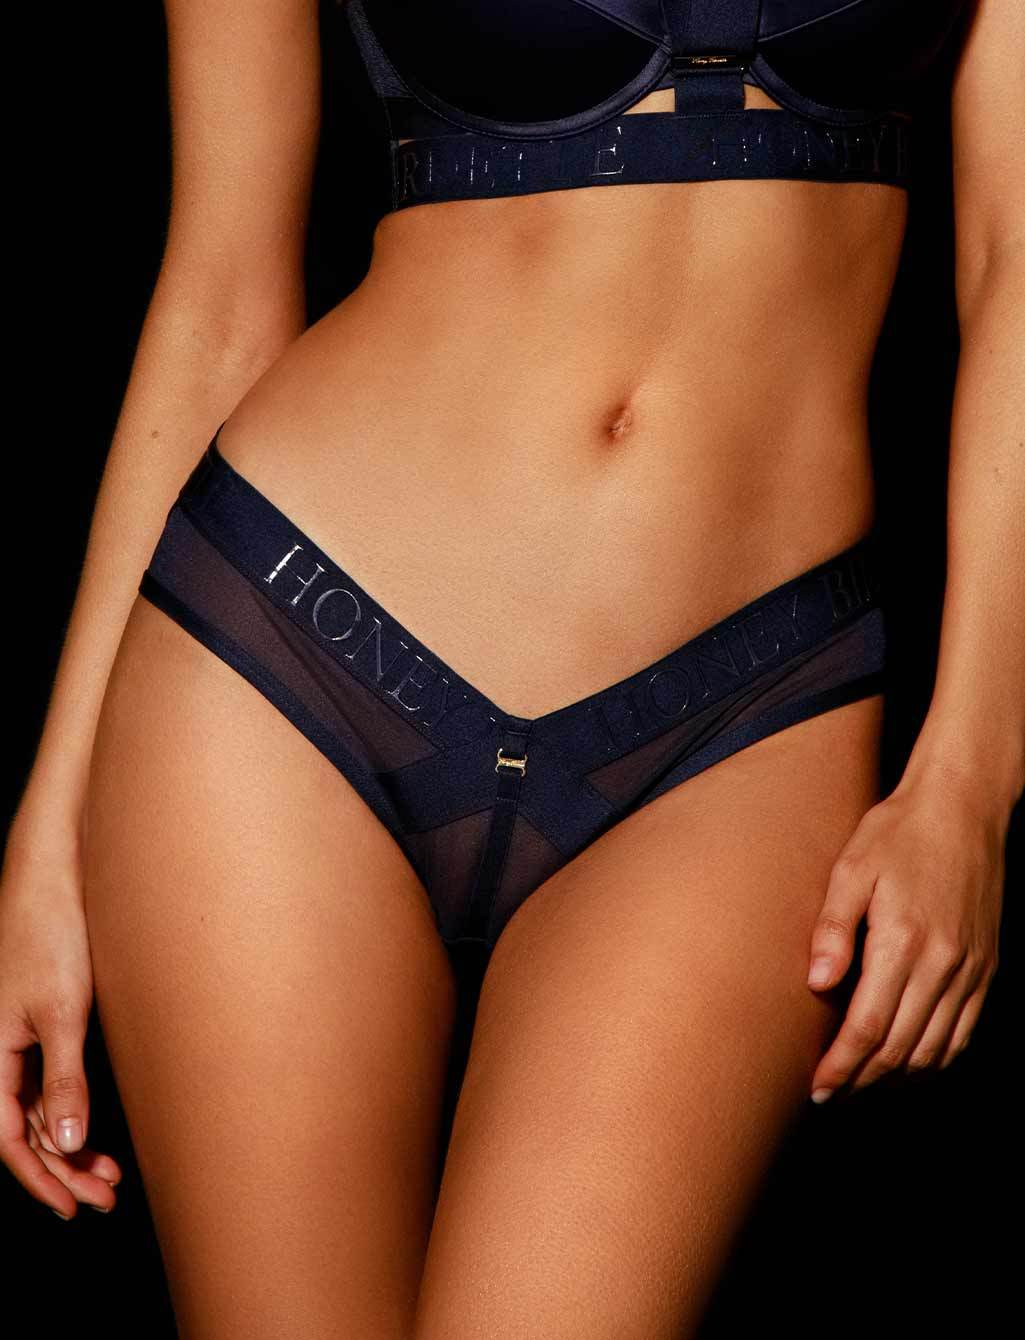 Elvis Navy Blue Lingerie Set - Shop  Lingerie | Honey Birdette